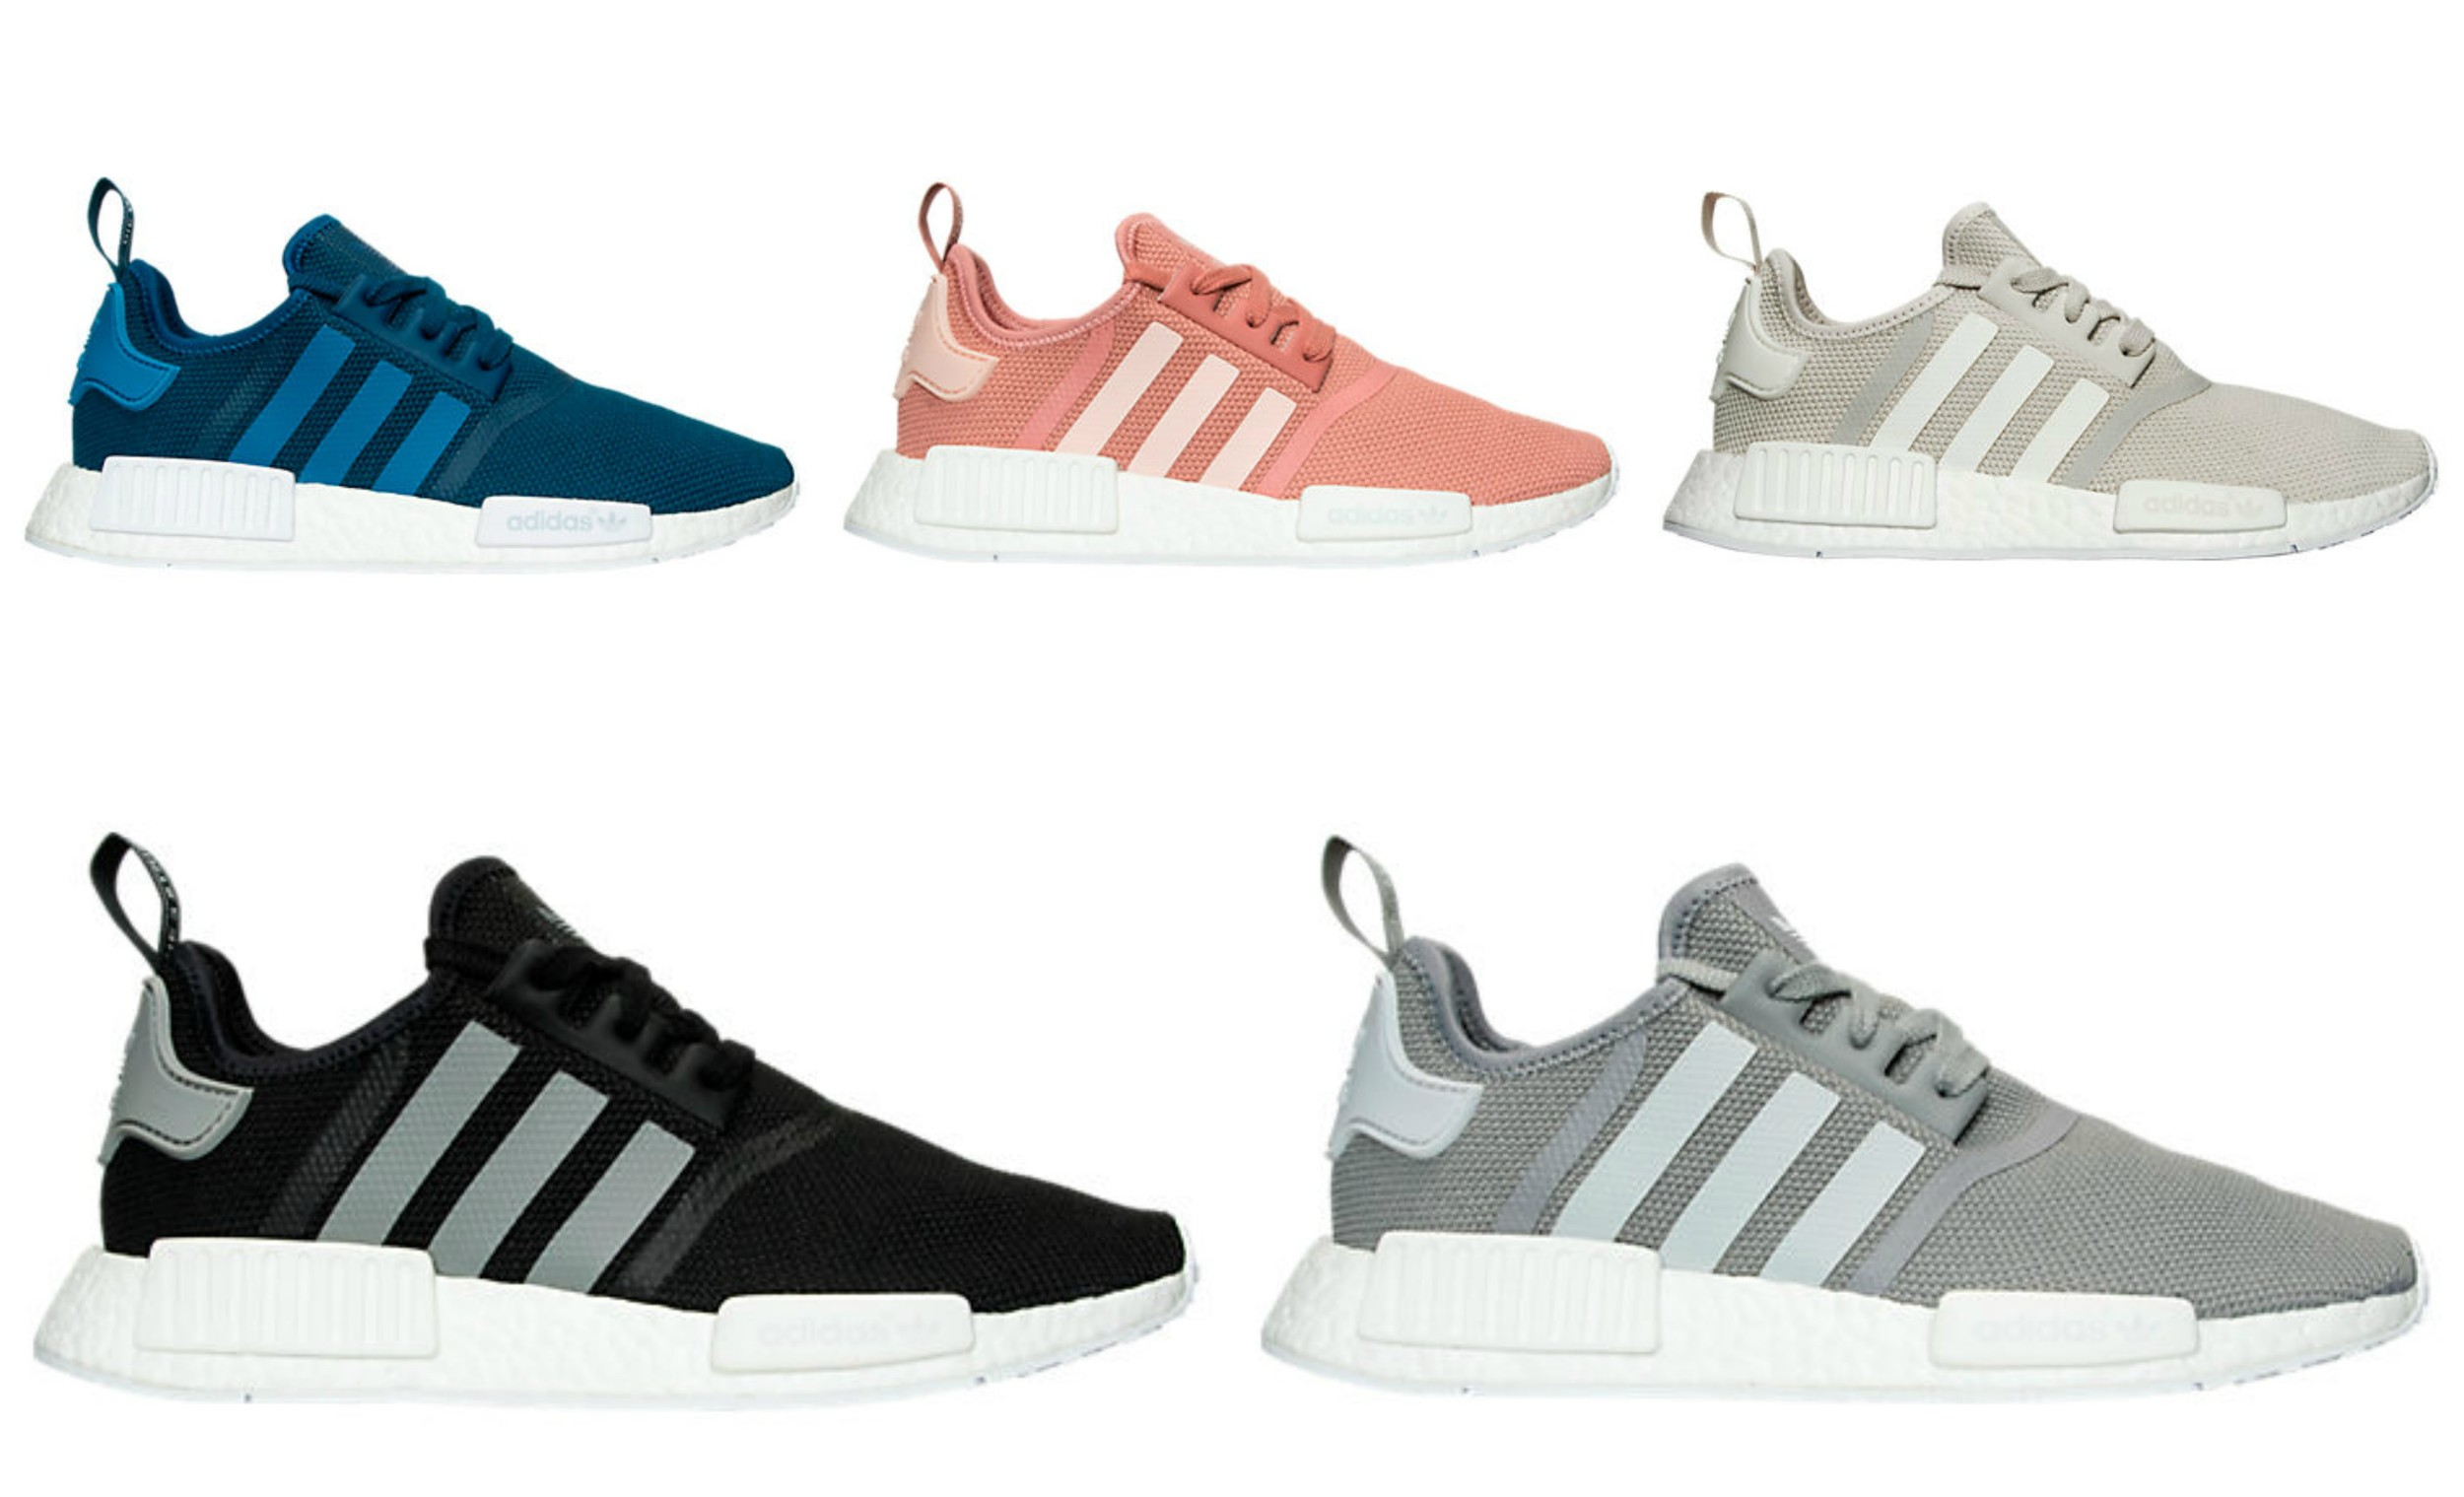 svnfgk Cheap Adidas NMD R1 for Sale